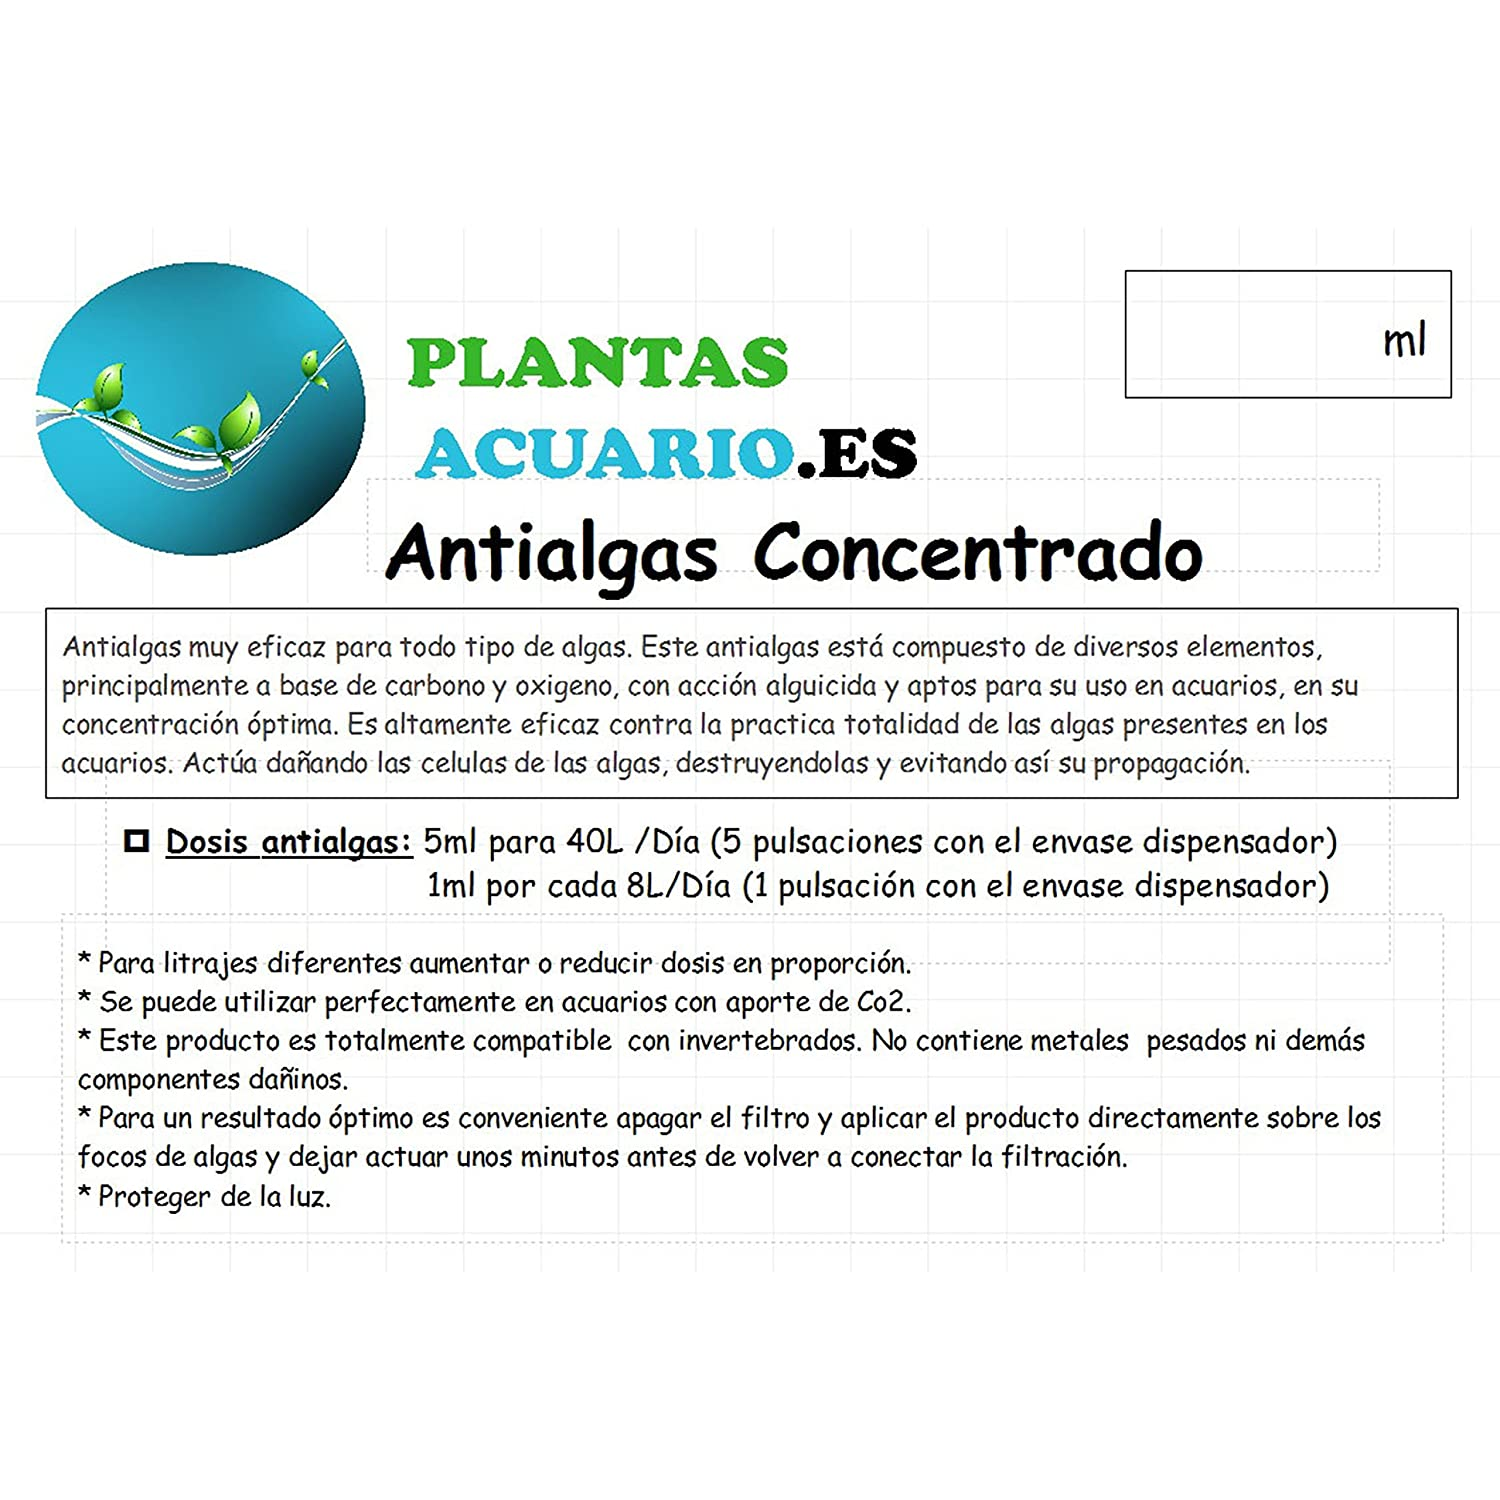 Antialgas Concentrado para Acuario 500ml: Amazon.es: Productos para mascotas